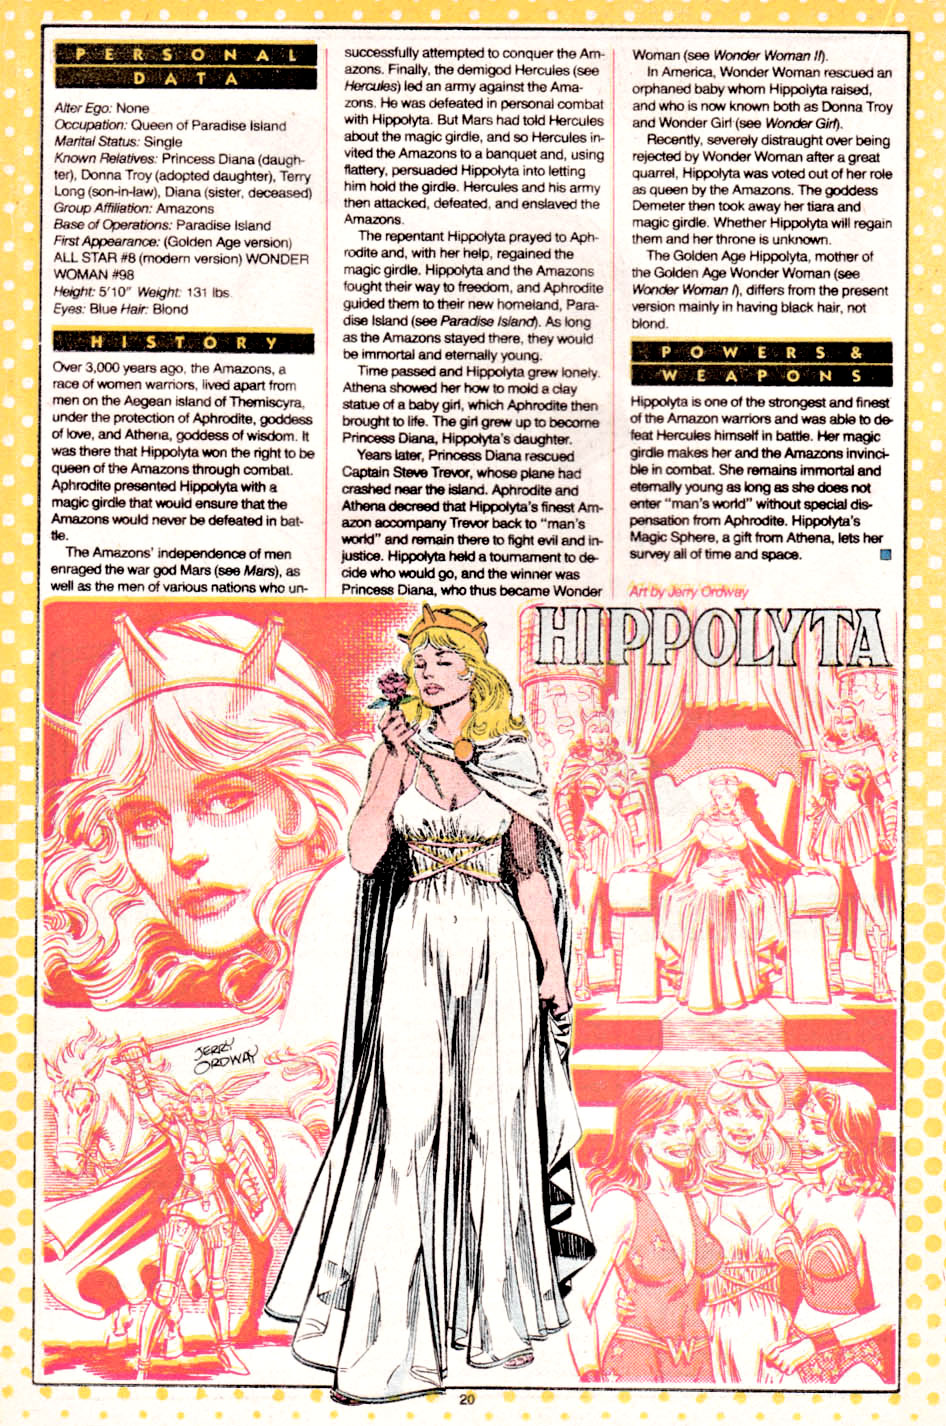 Hippolyta by Jerry Ordway - Who's Who: The Definitive Directory of the DC Universe #10